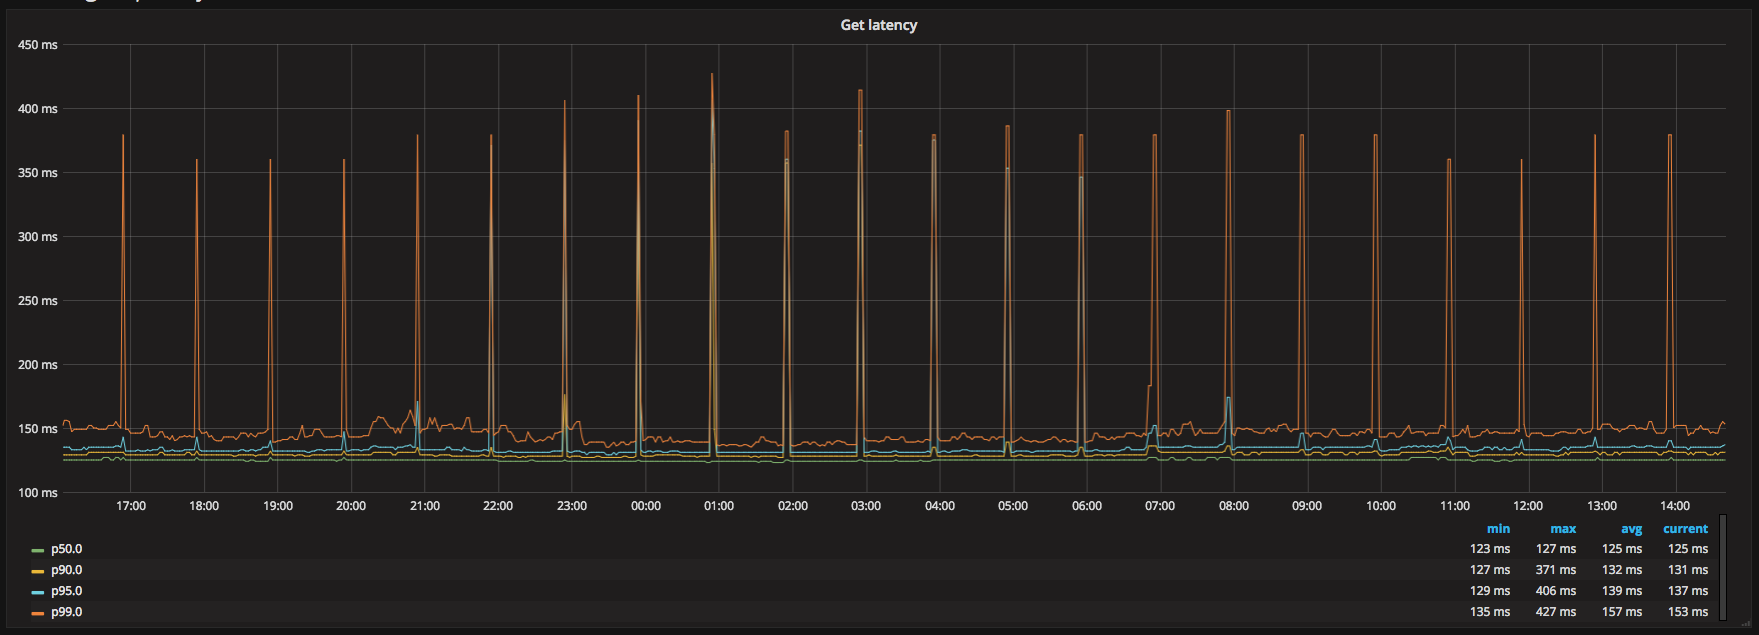 Latency spikes at every hour due to connection refreshes